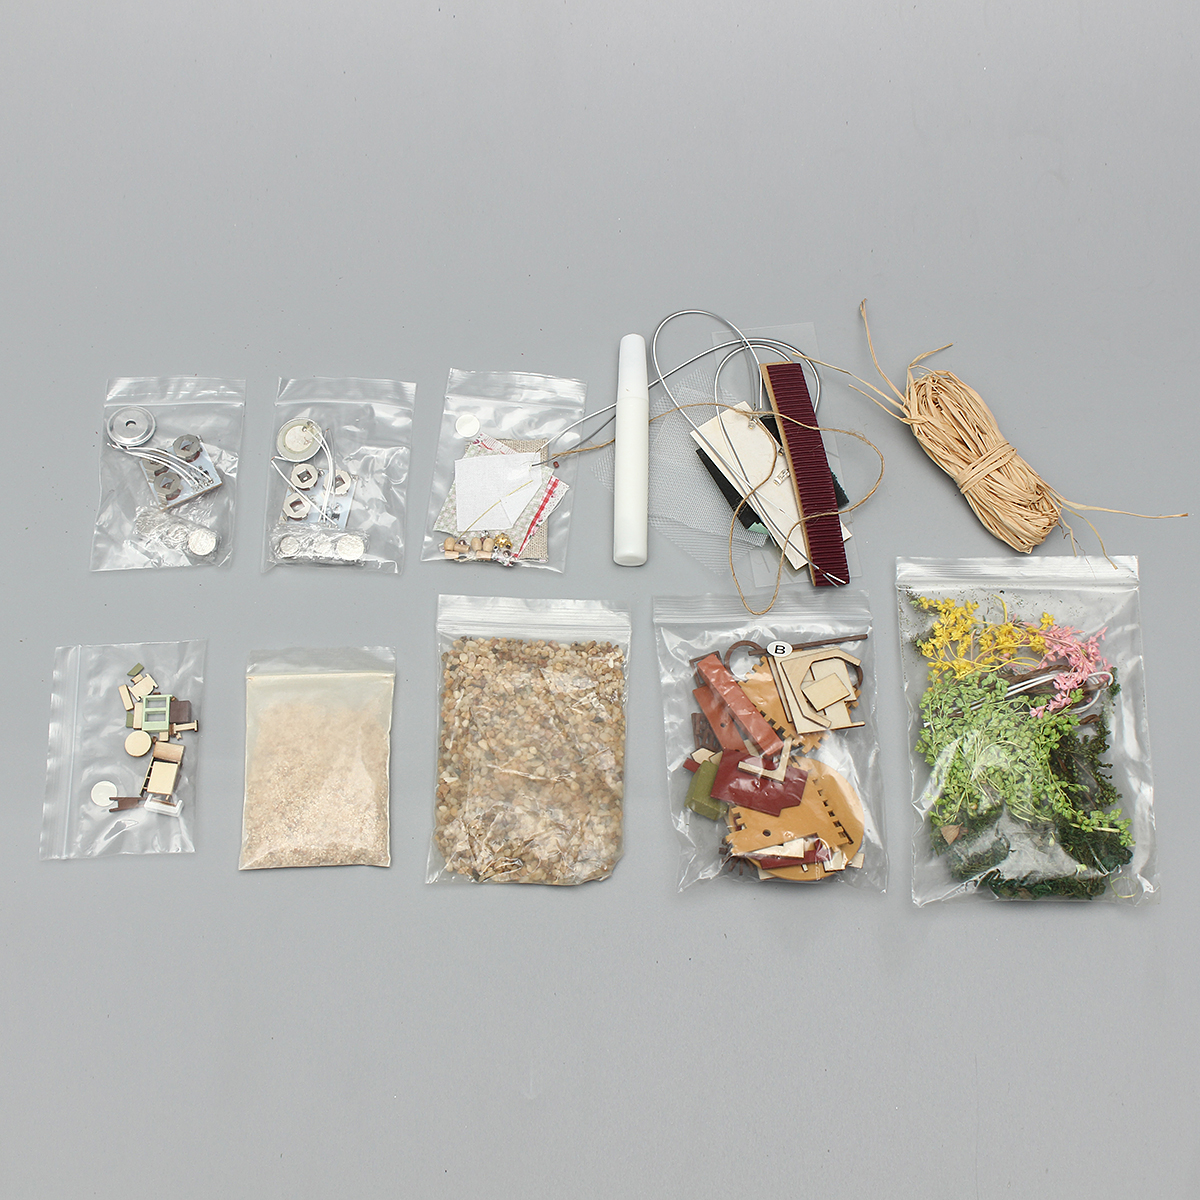 CuteRoom Forest Dream Island DIY House B-001 Glass Ball With LED Light Collection Toy Gift Decor